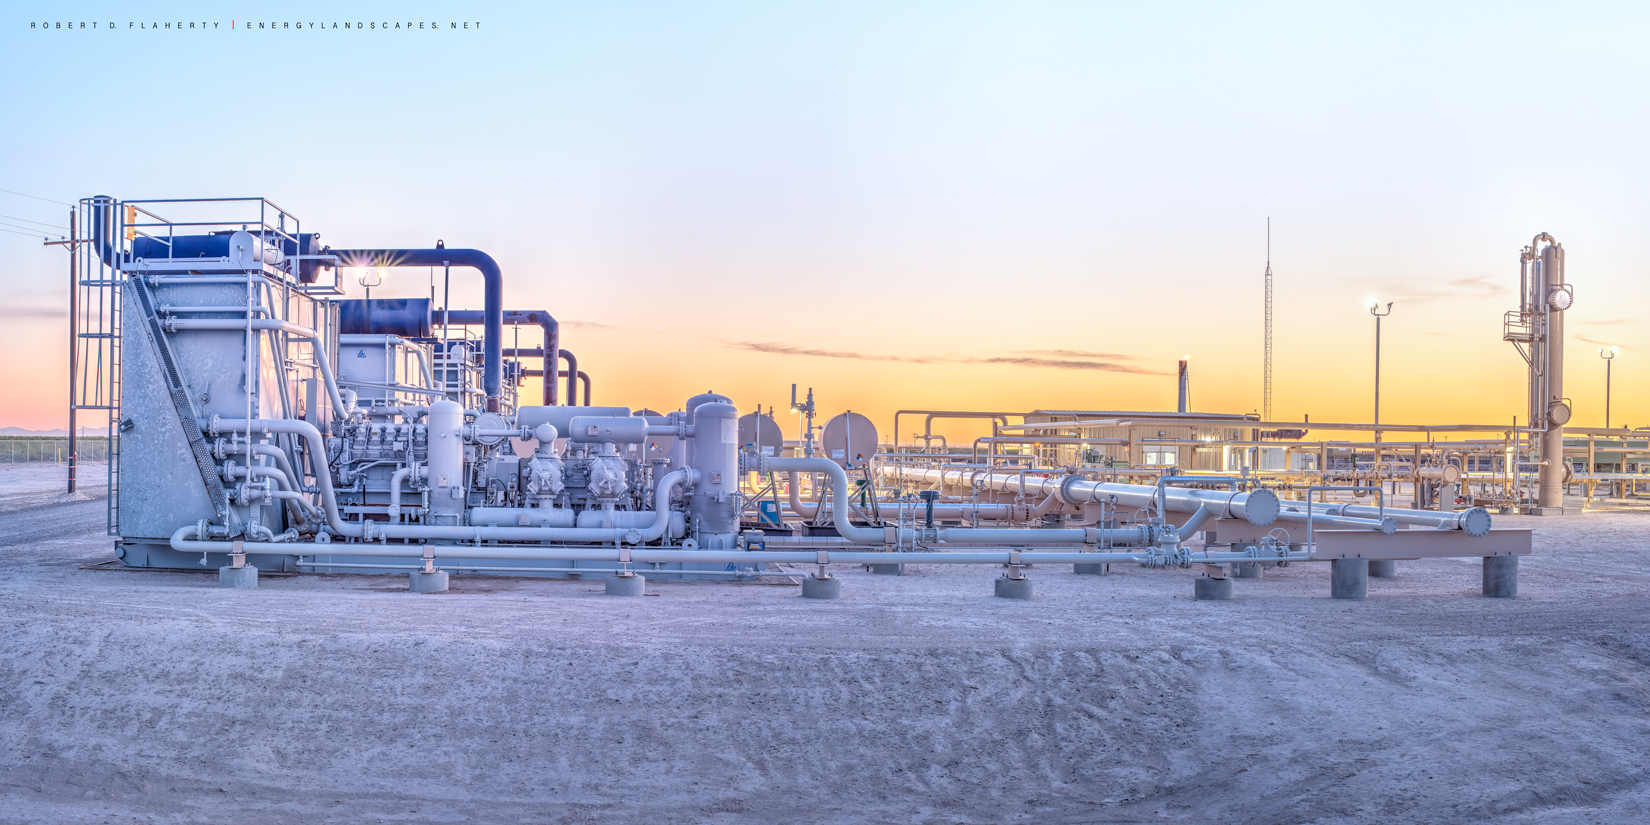 Pecos Texas, Delaware Basin, compressor, sunset, panorama, Permian Basin, gas plant, midstream oil & gas, photo